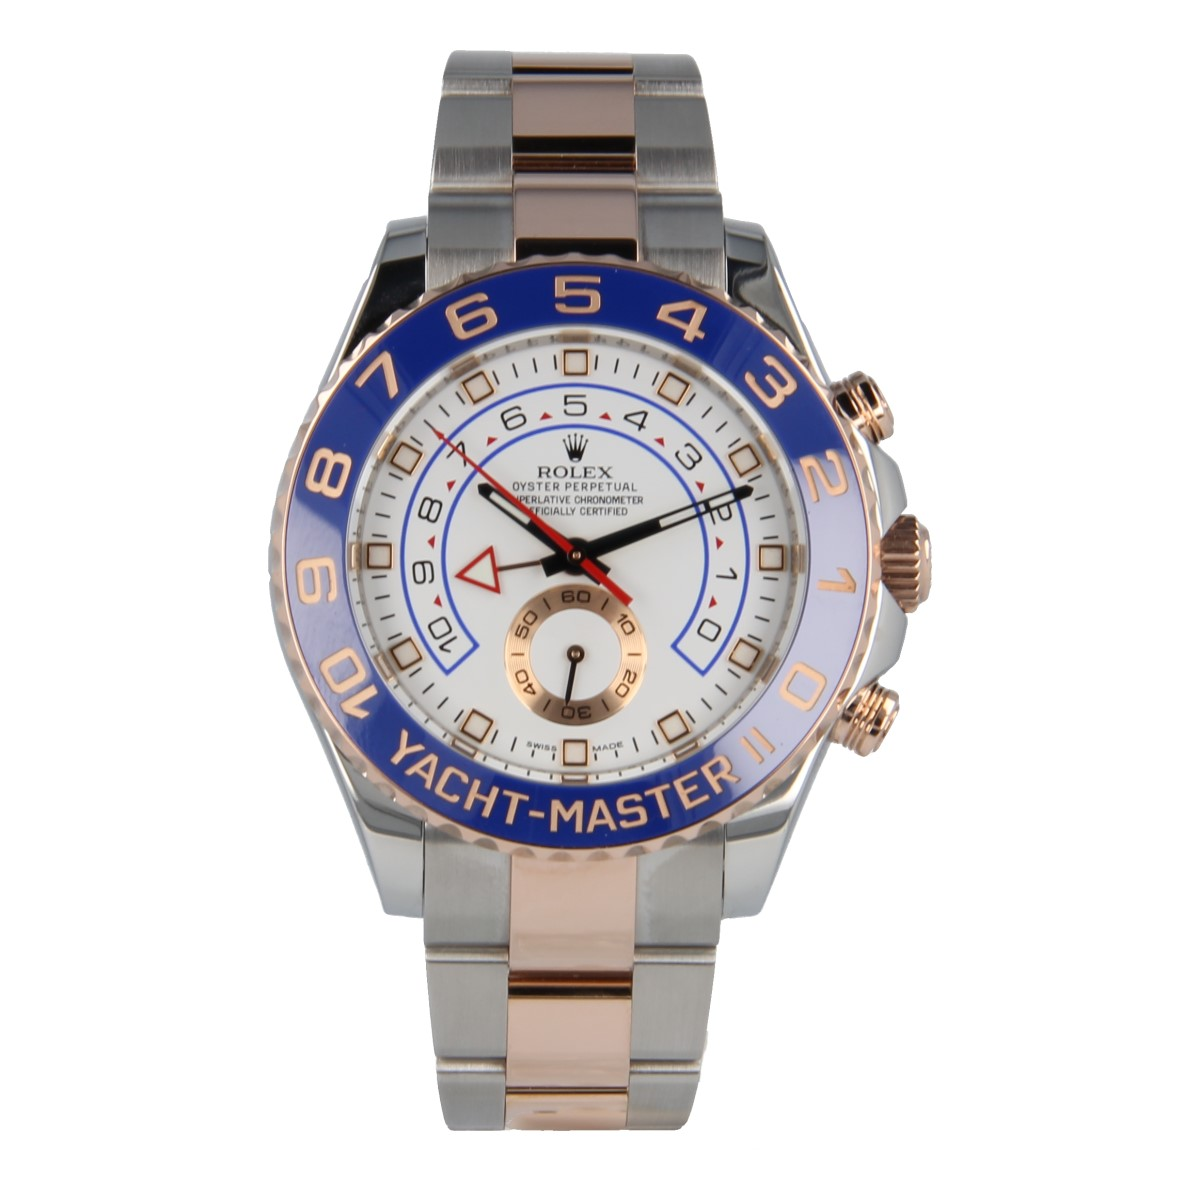 Rolex Yacht Master II 116681 44 mm | Buy pre-owned Rolex watch